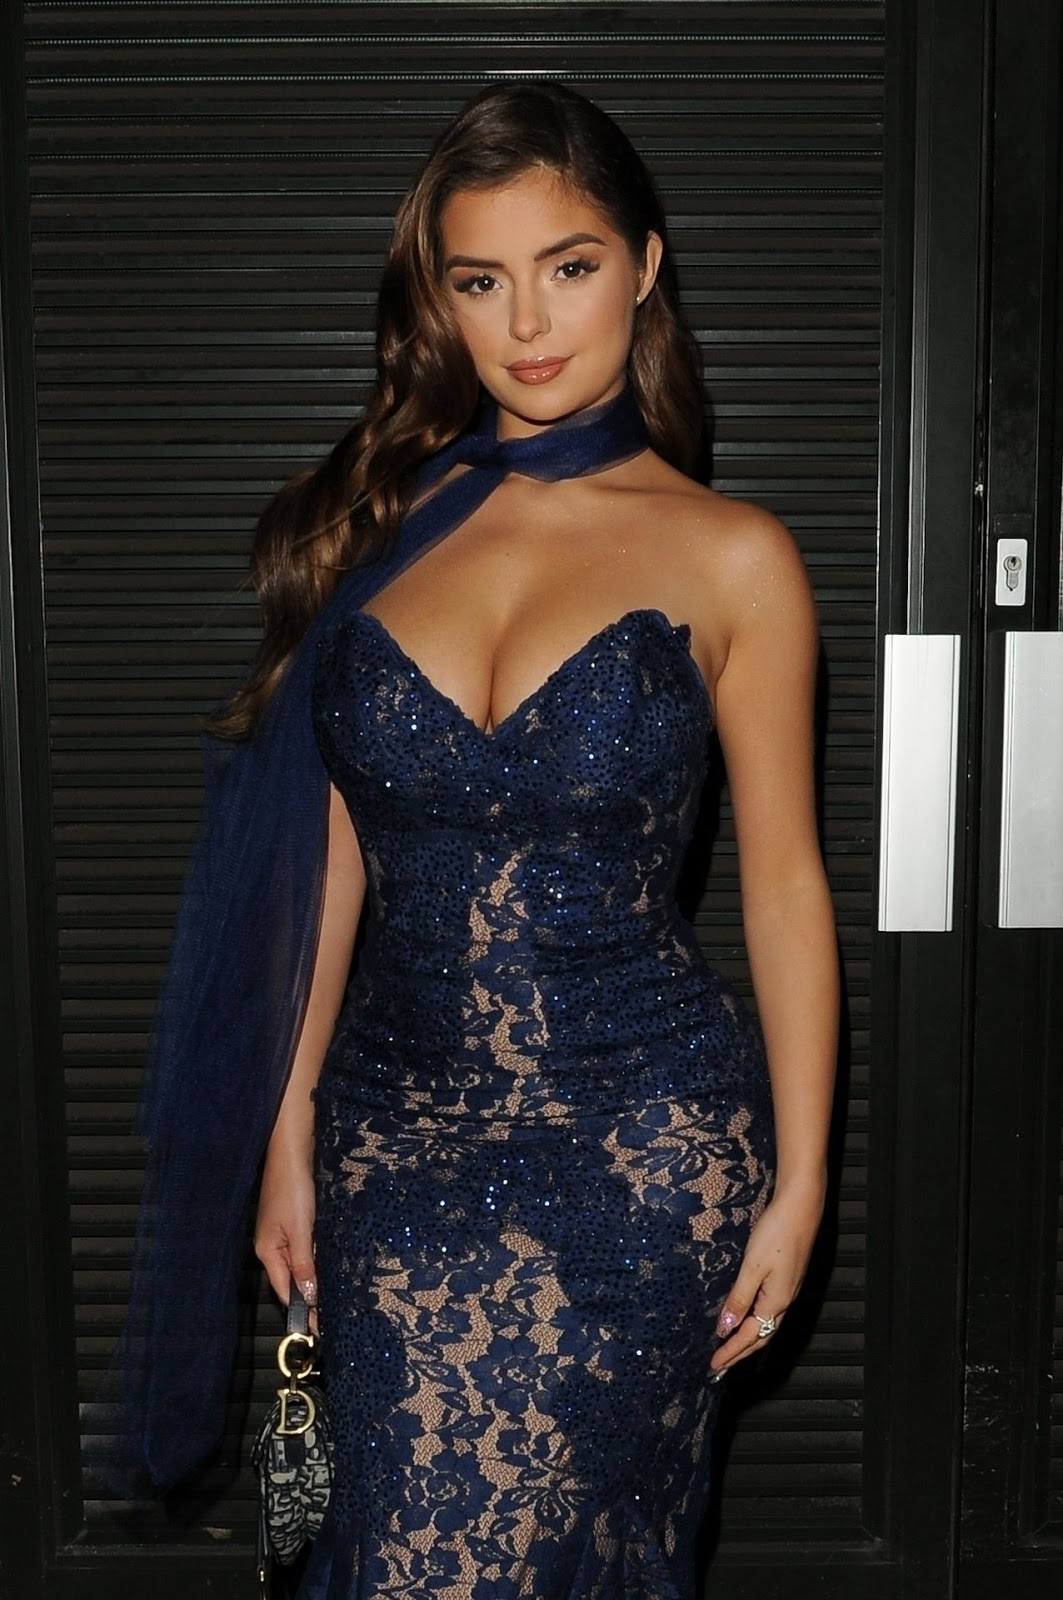 Demi Rose - Leaves Home For The Brits 2019 - Wed Feb 20 2019